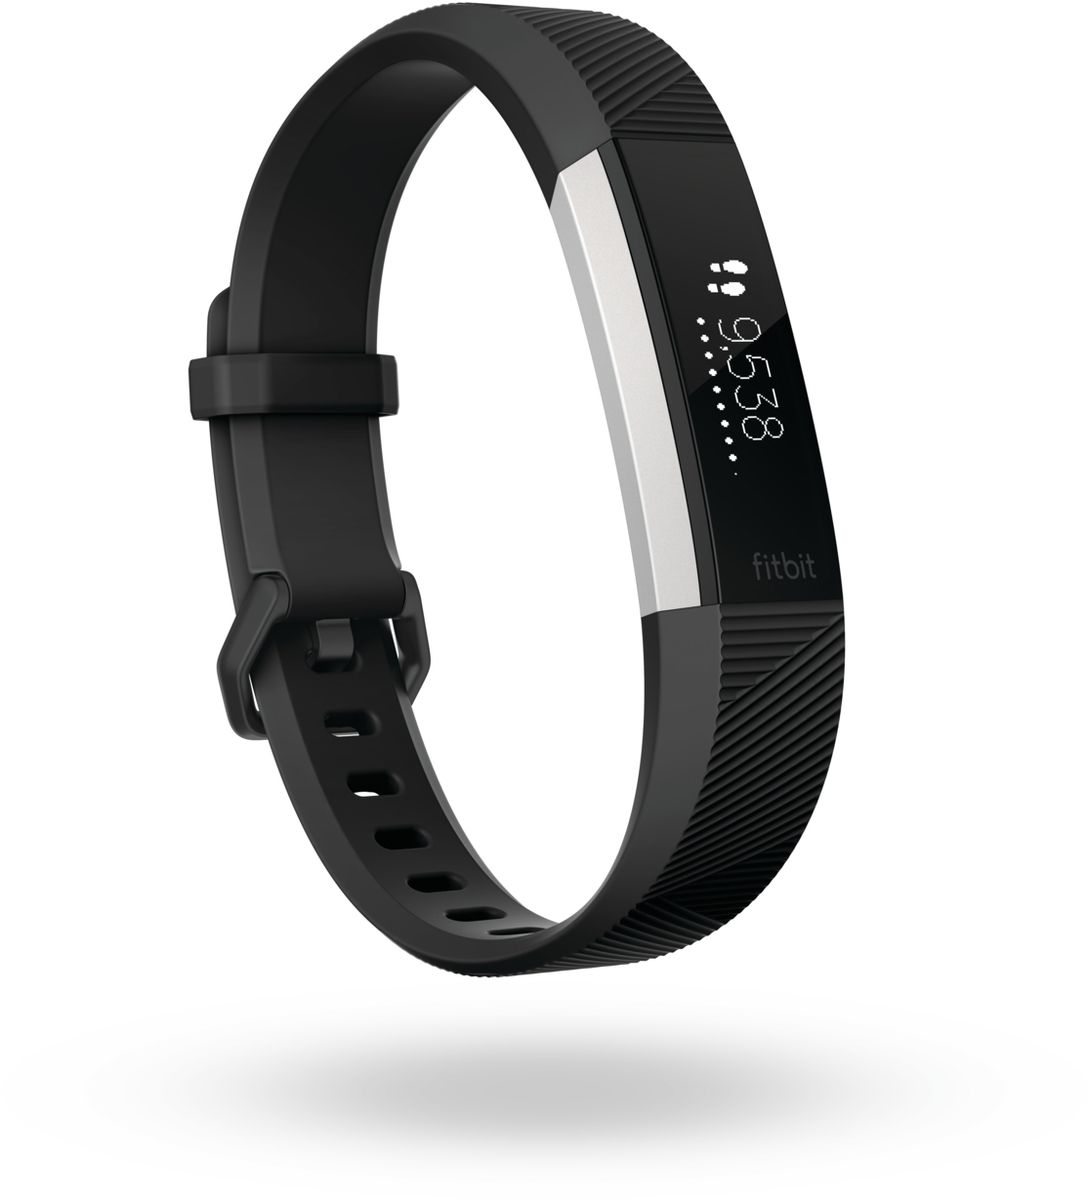 FITBIT fitbit Activity Tracker »ALTA HR, L«